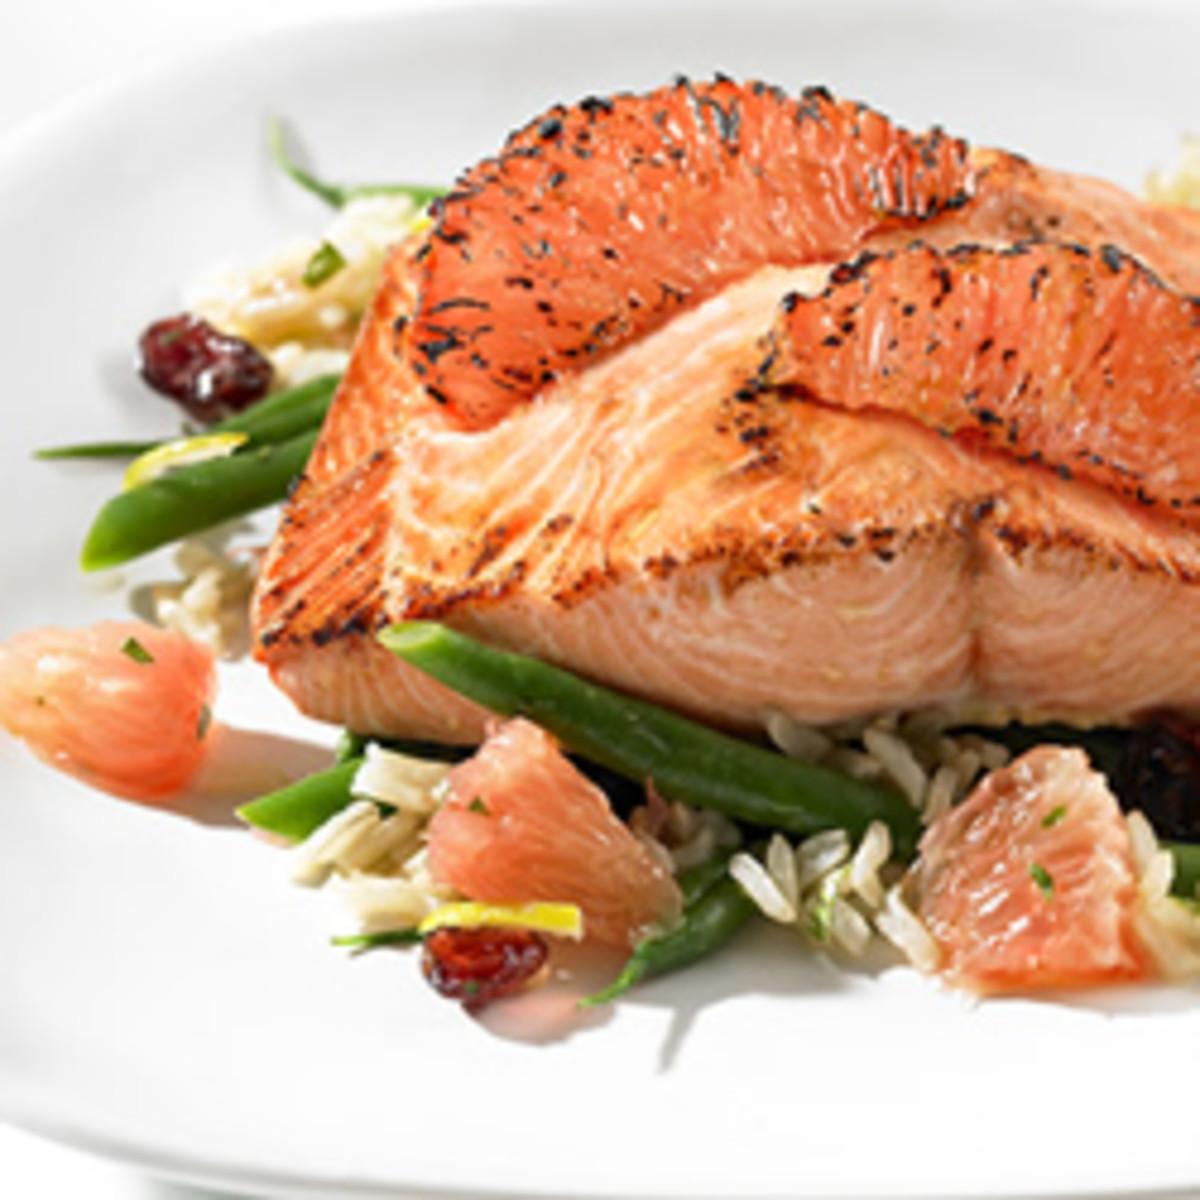 Sugar-crusted Salmon with Florida Grapefruit and French Green Bean Salad